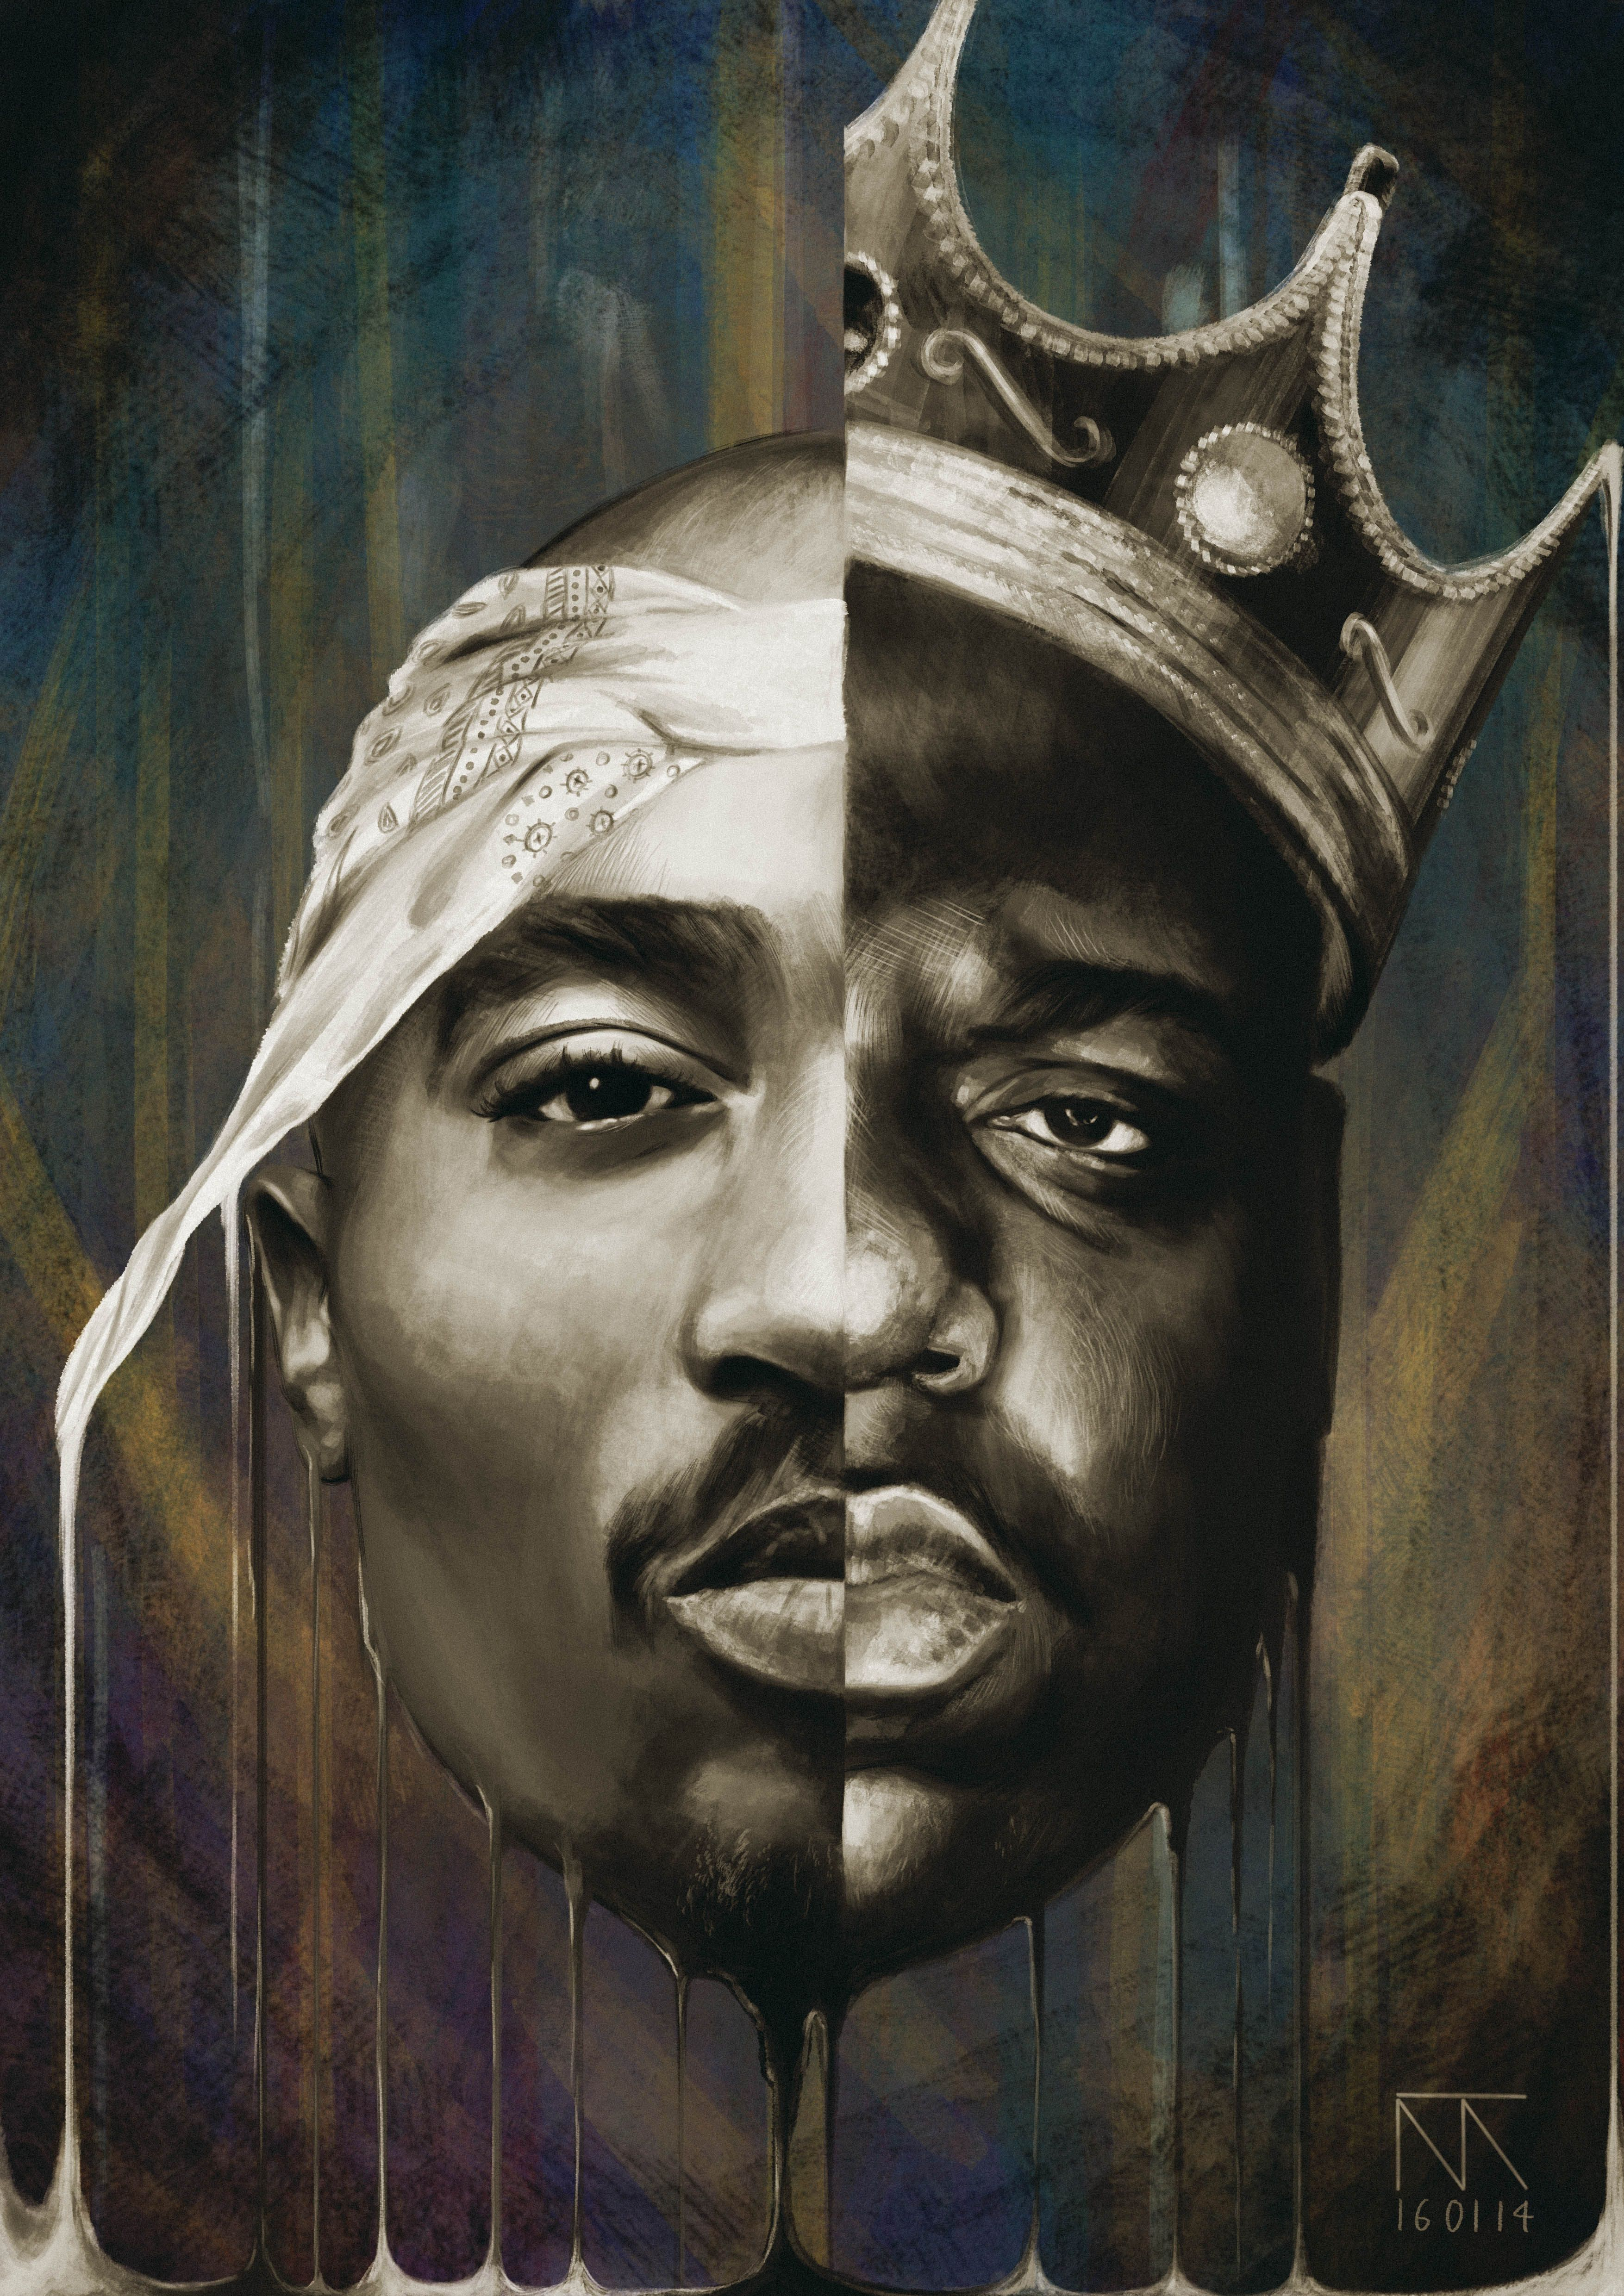 Biggie Smalls and Tupac Shakur brought Hip Hop to the